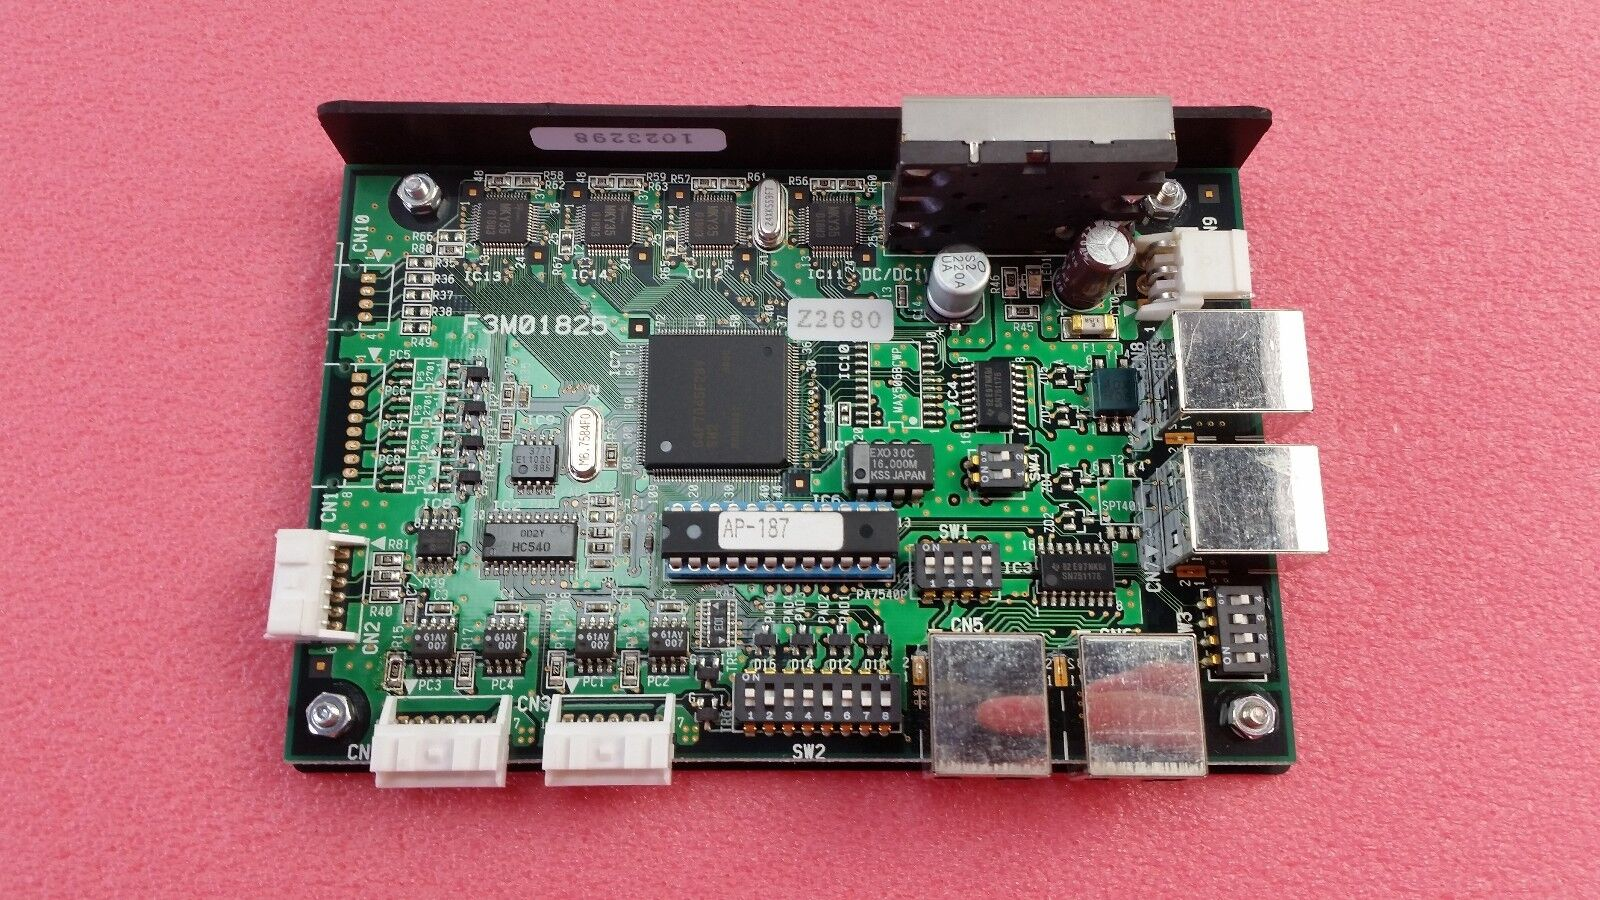 Tel Tokyo Electron Driver Board F3M01825, Z2680, D4290, Used Working